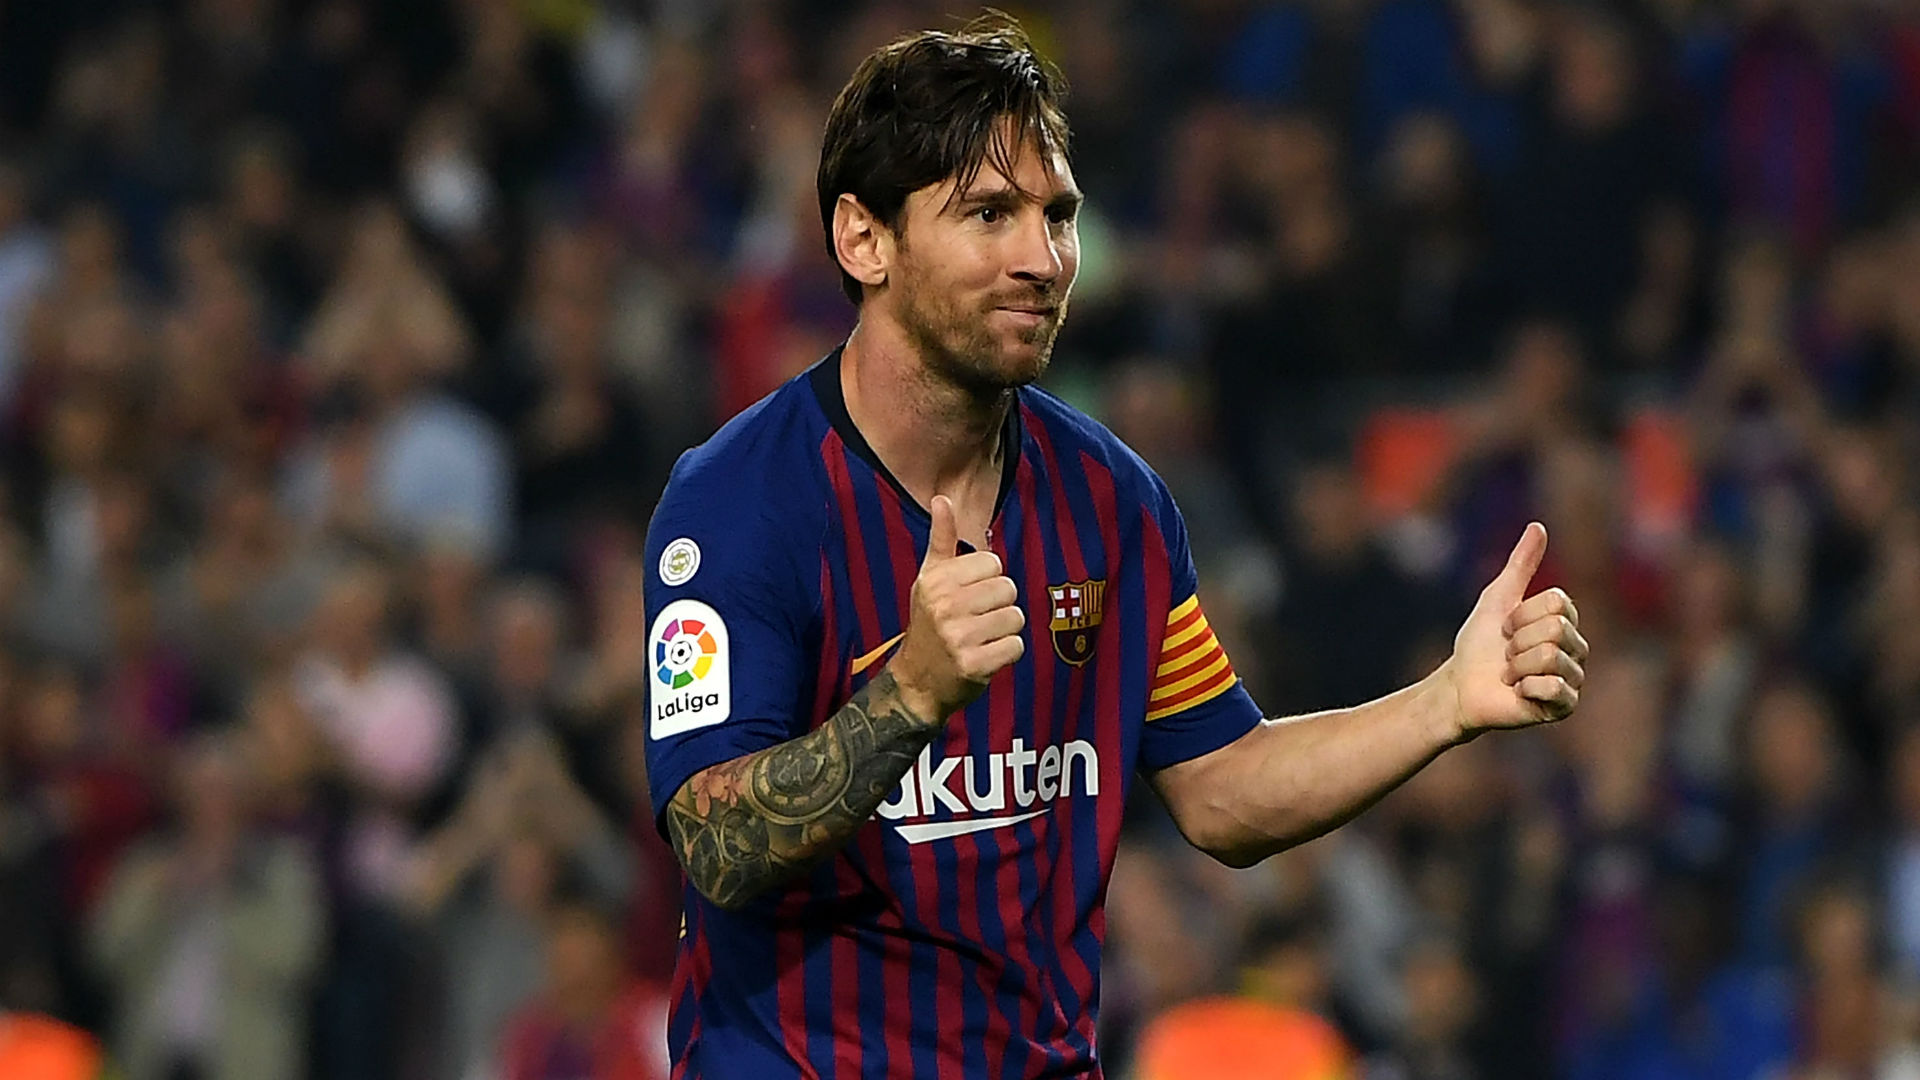 Messi returns to Barcelona squad following broken arm